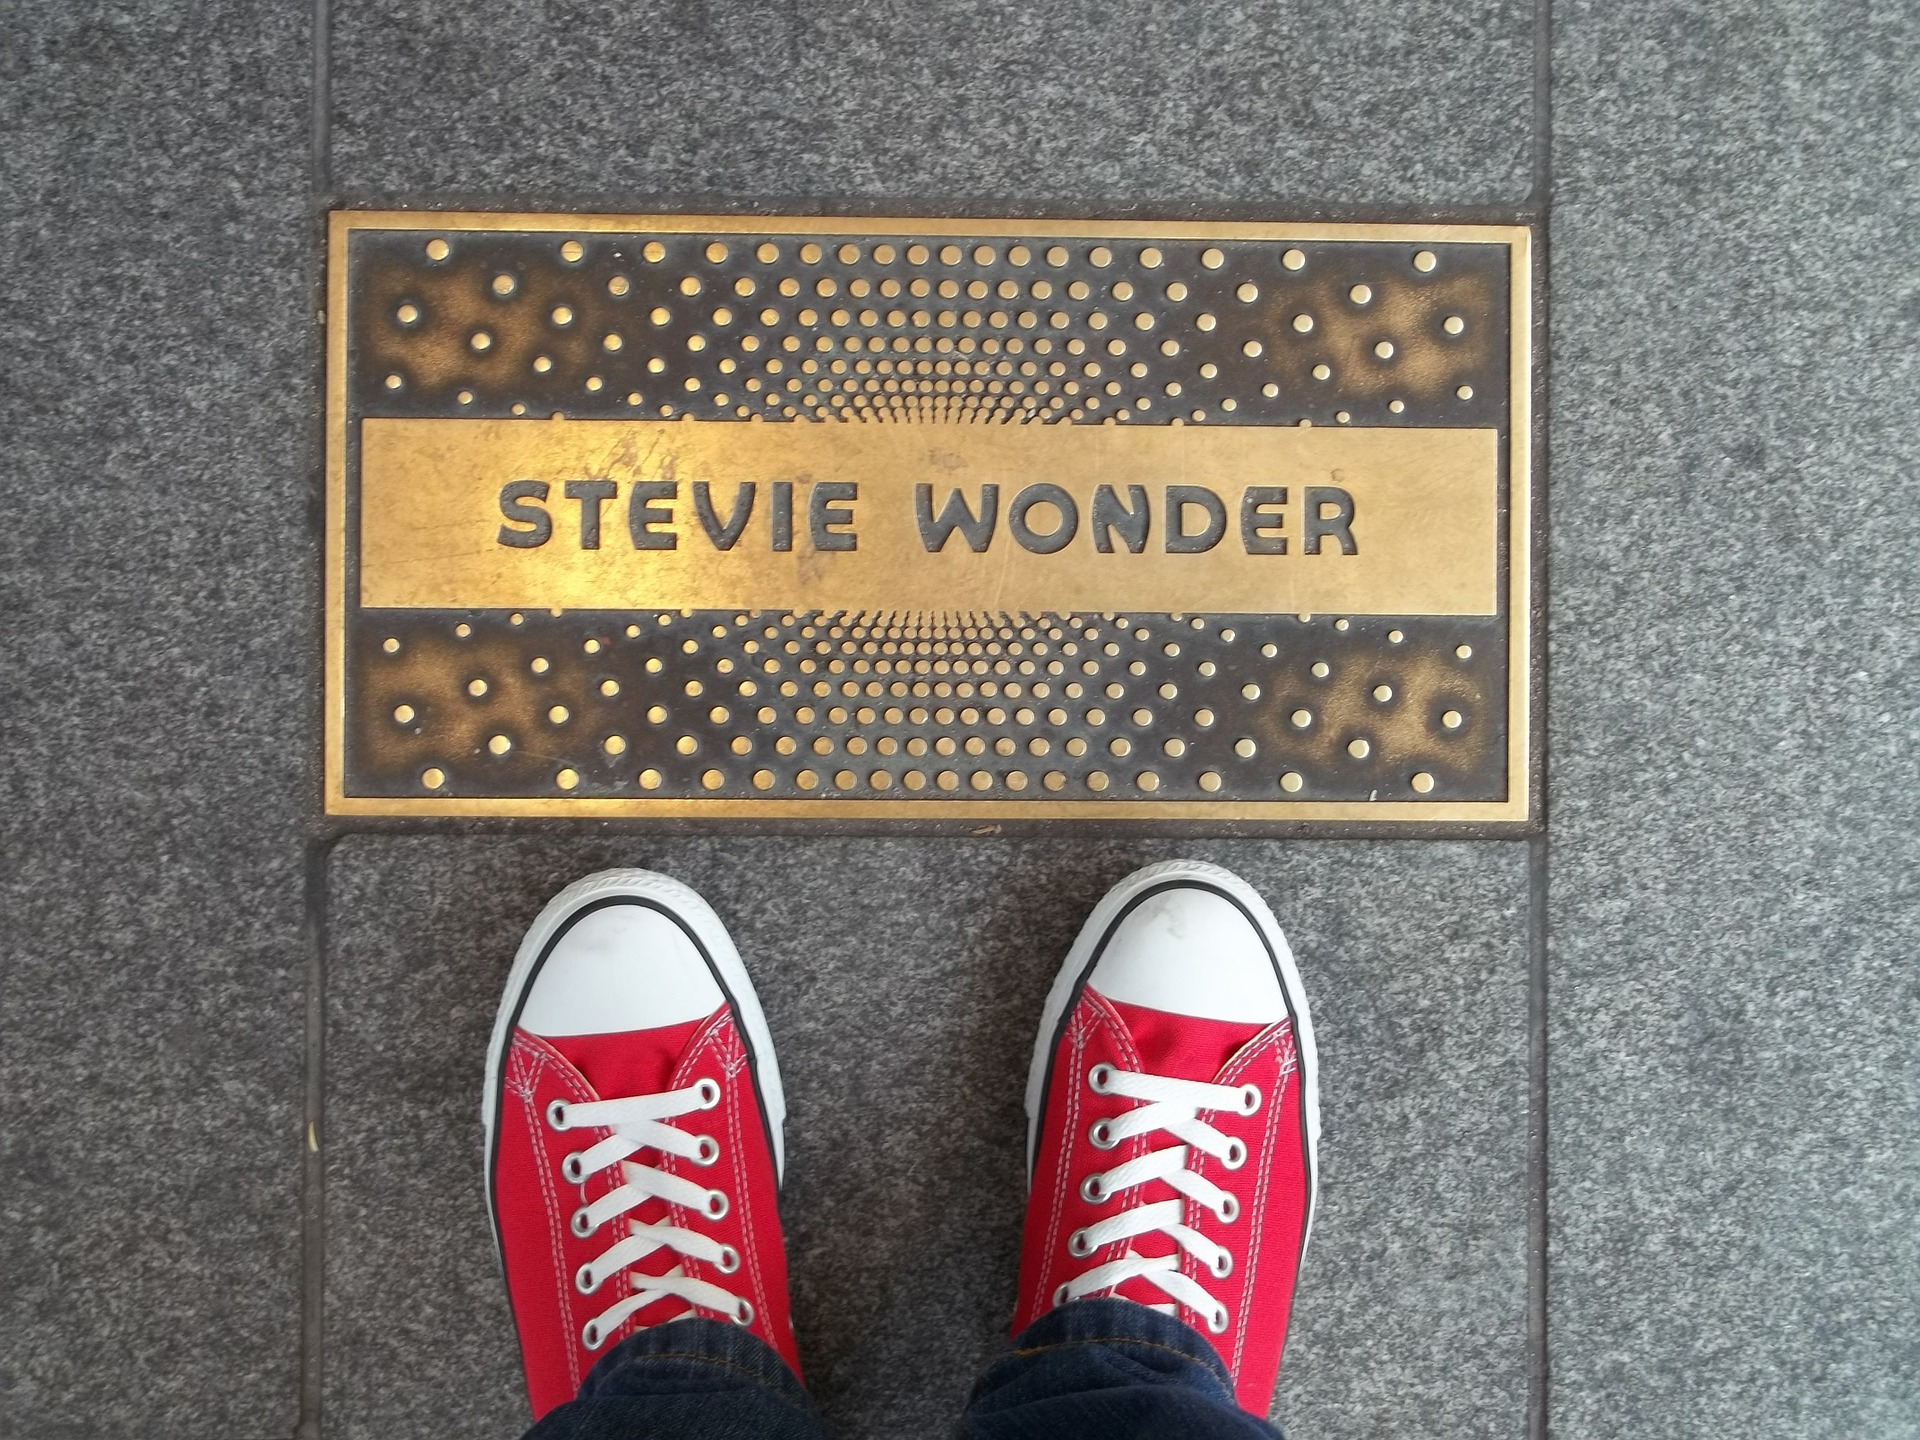 Stevie Wonder plaque